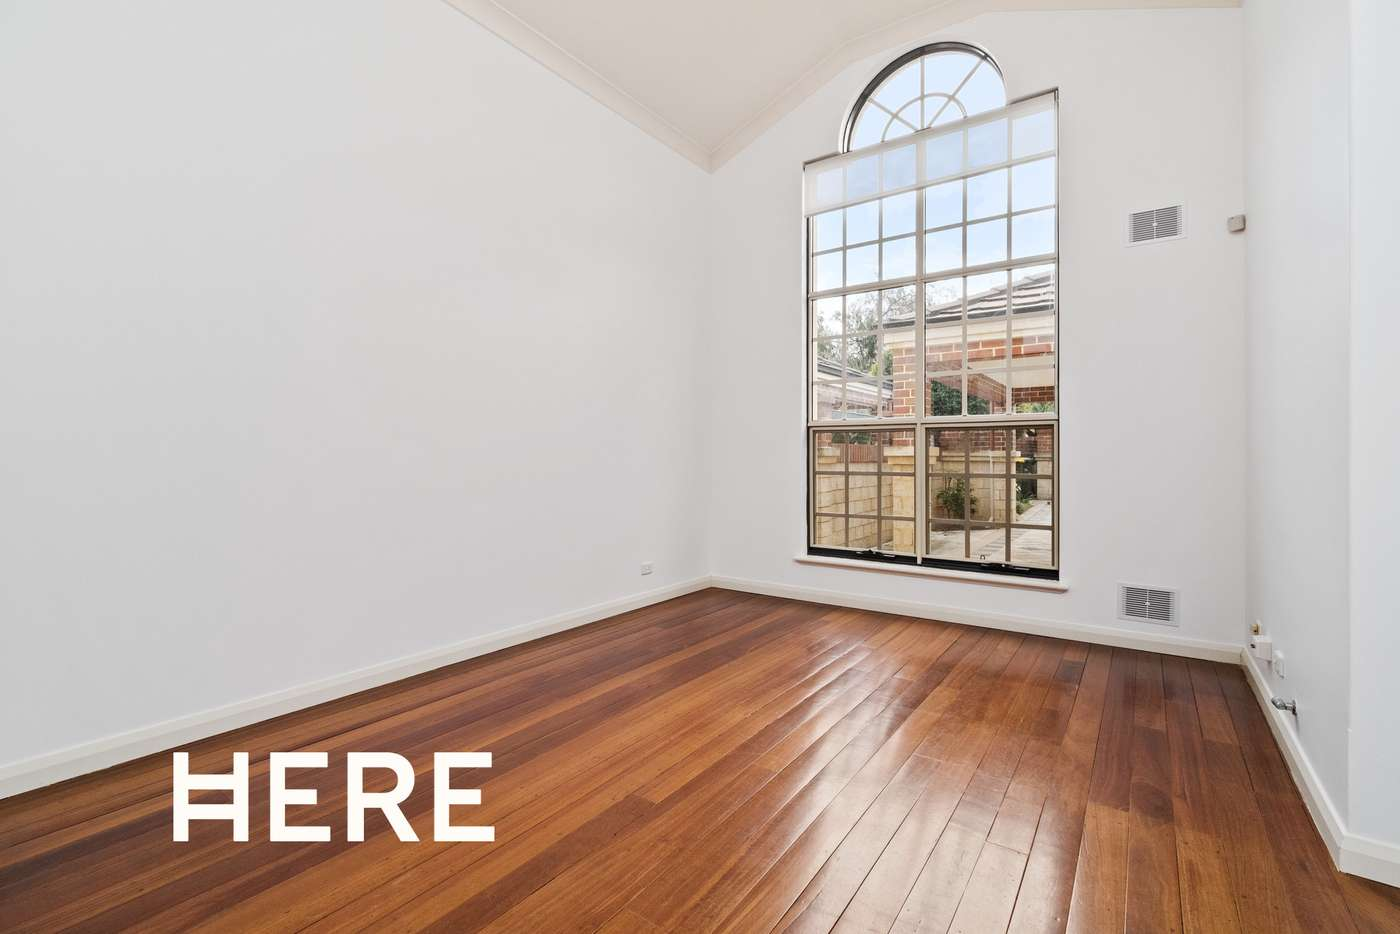 Seventh view of Homely townhouse listing, 41B Galwey Street, Leederville WA 6007